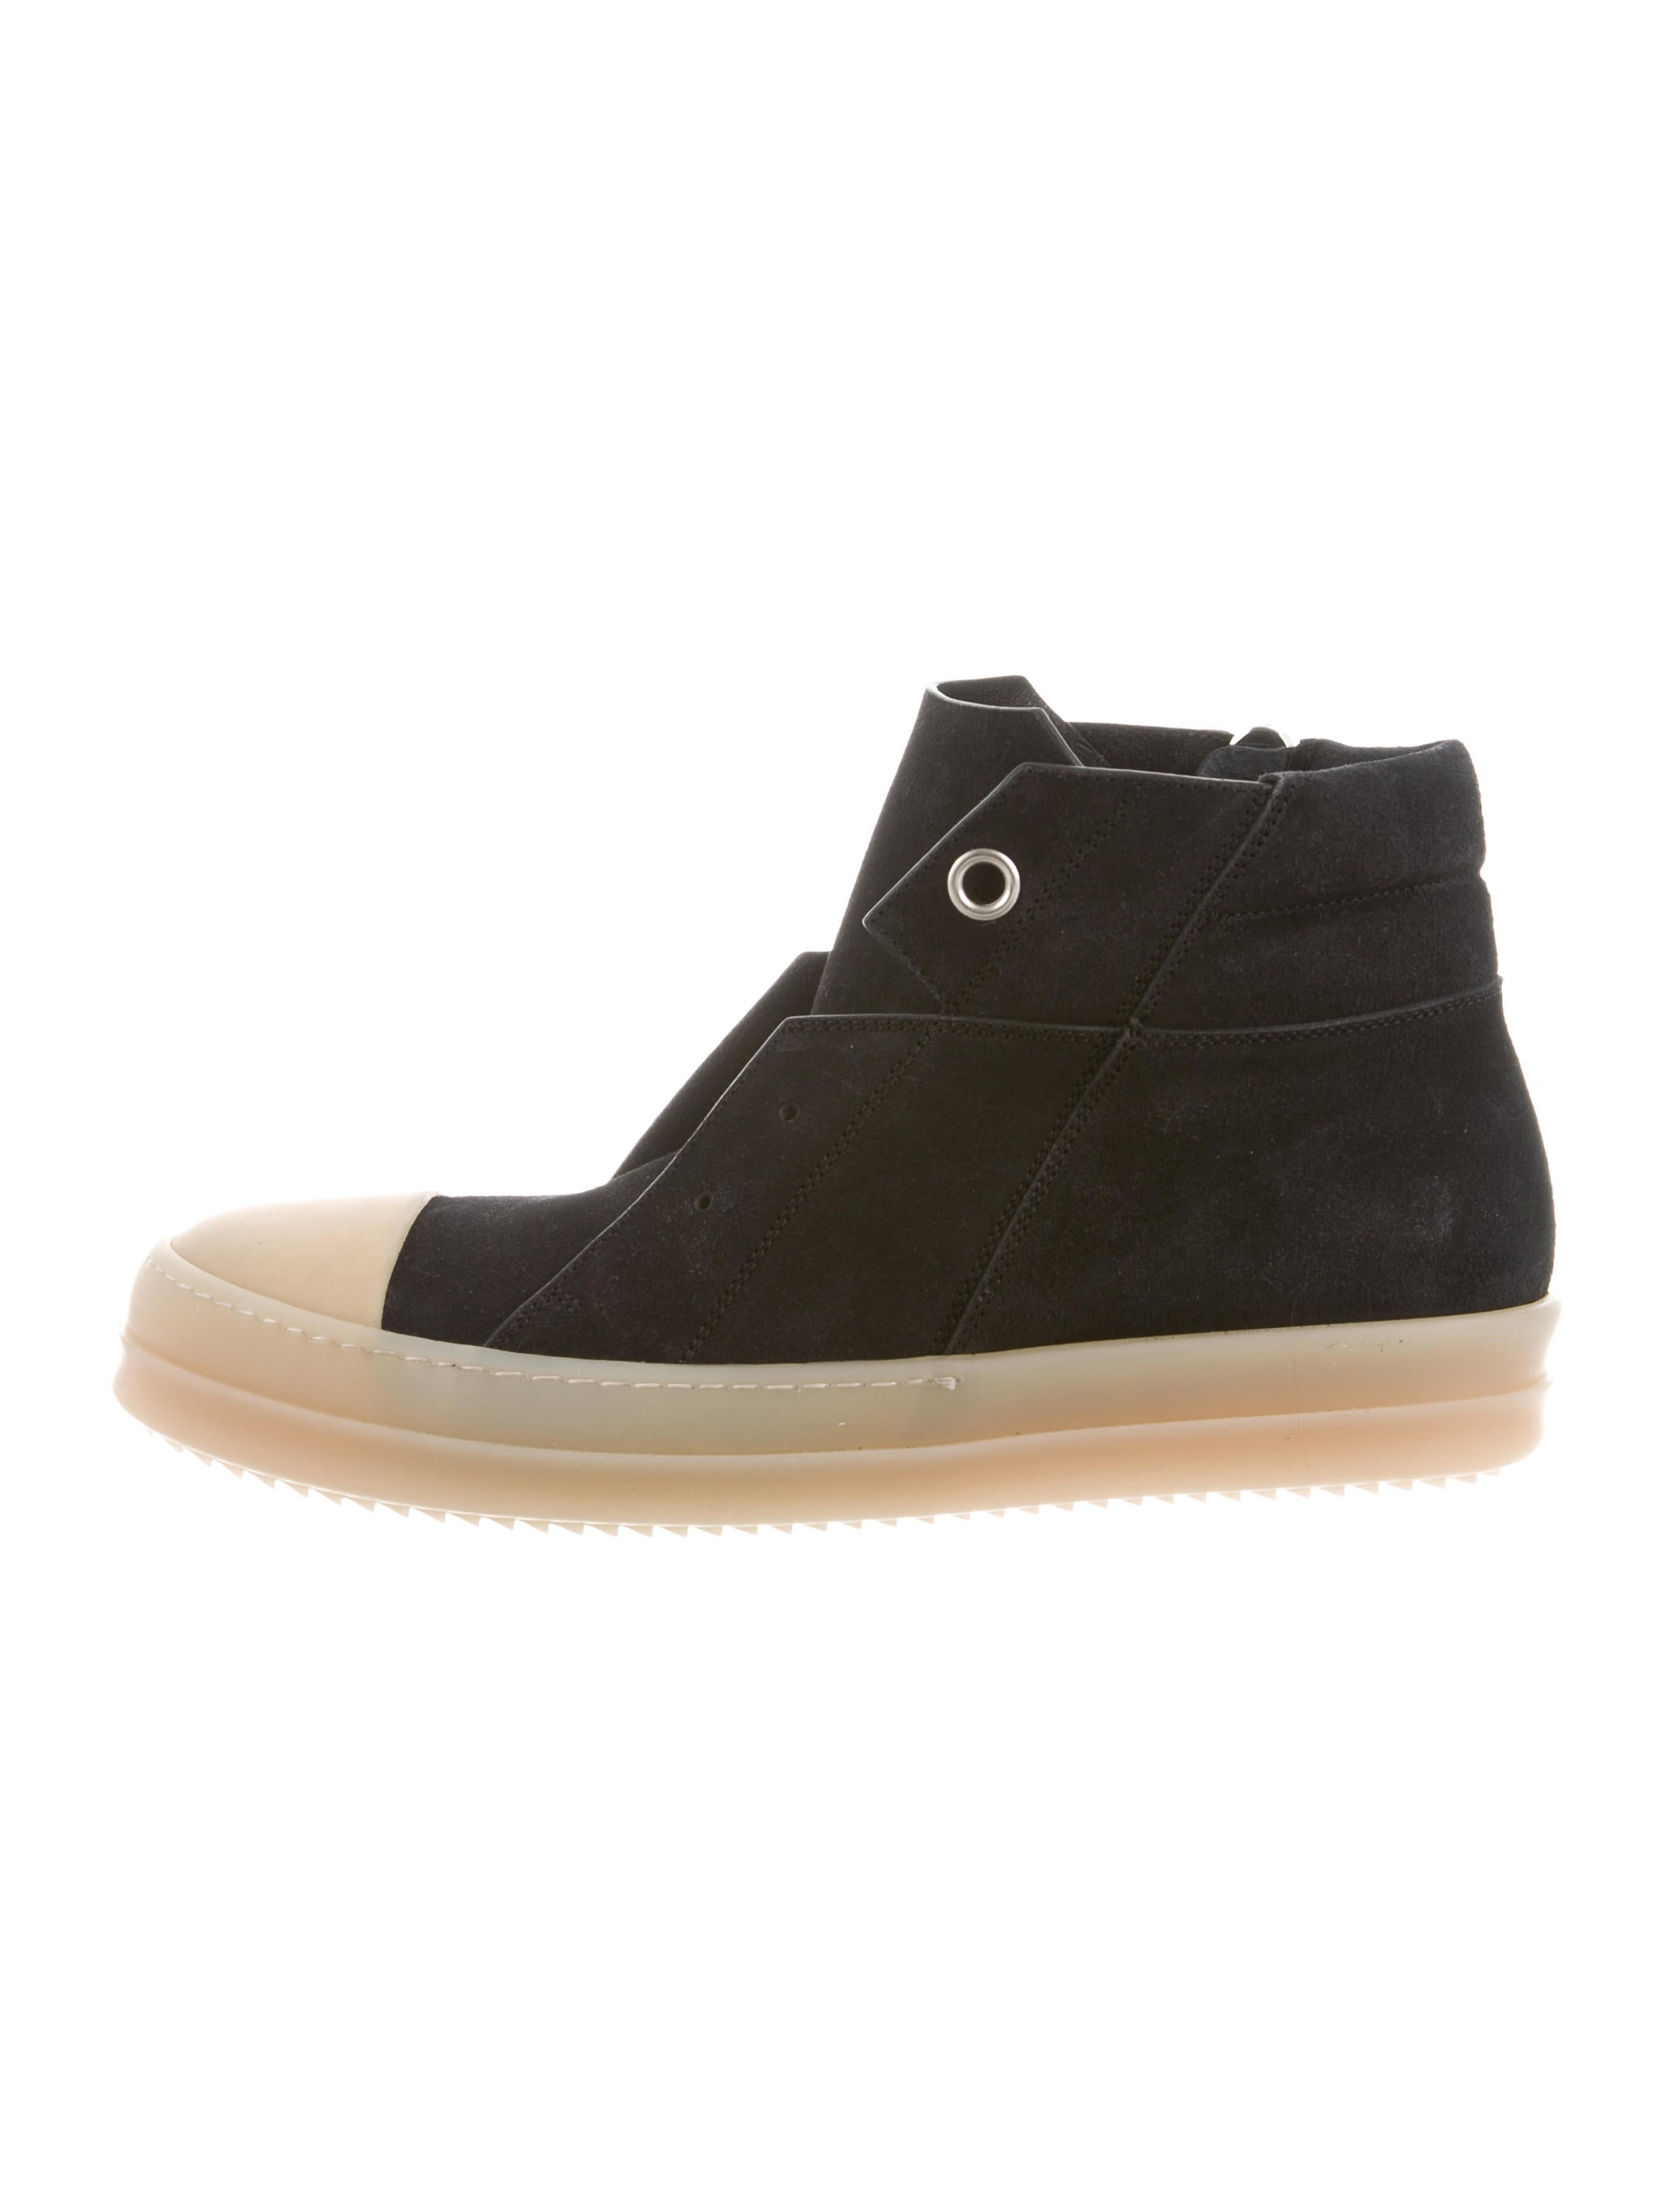 Official Mens Rick Owens island Dunk Sneakers Store